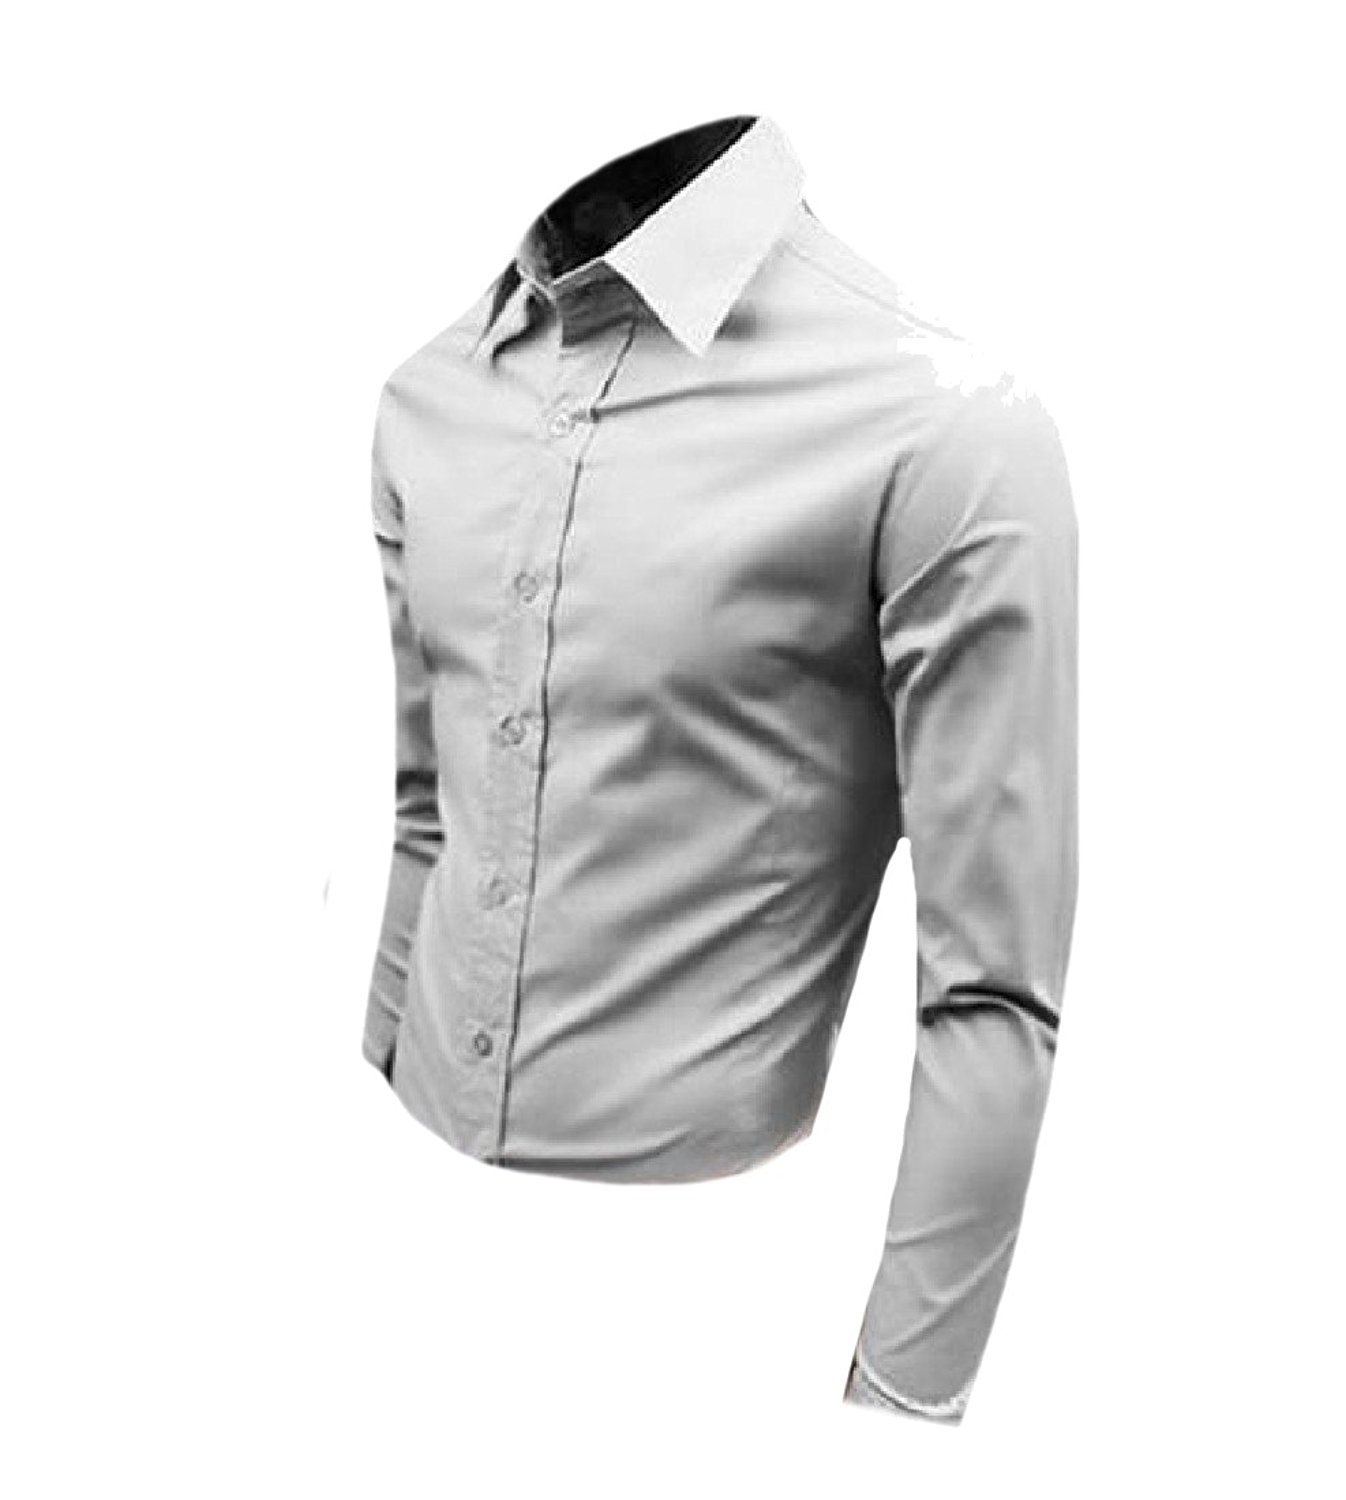 YUNY Men Original Fit Chinese Style Button Down Casual Shirts Black S